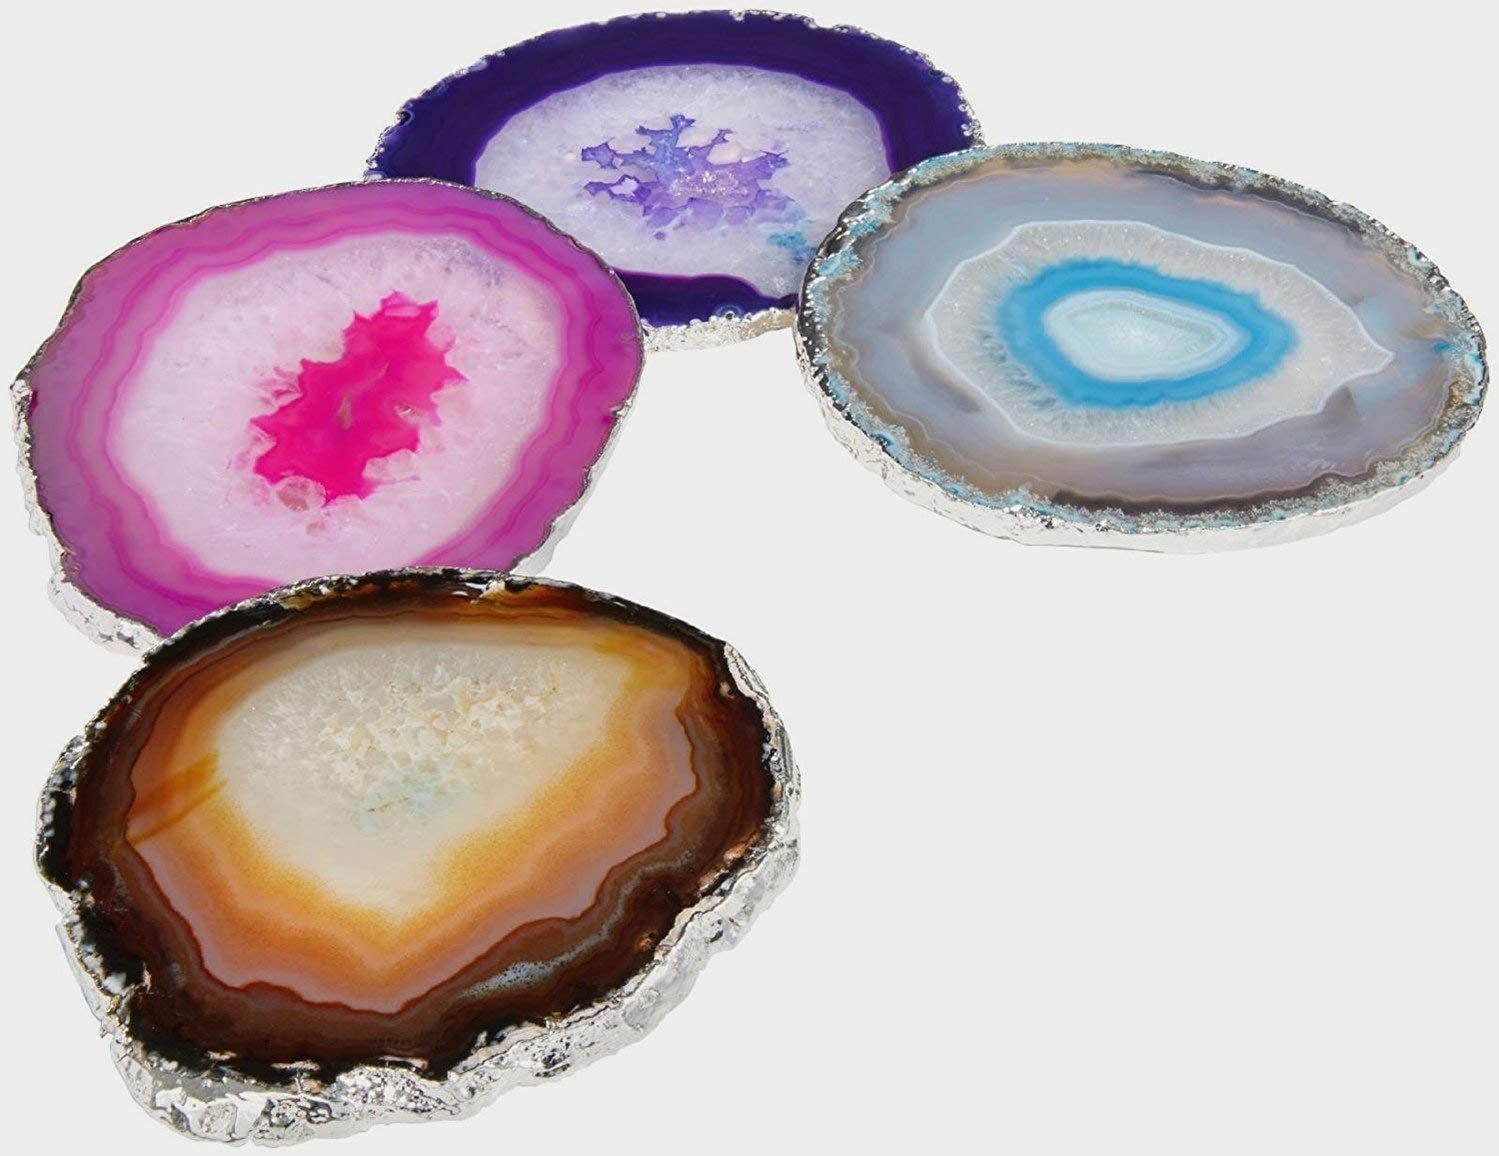 Yogavni Natural Agate Coasters with Rubber Bumpers - AS103, Large (4-5 inch), Assorted Colors (4 pcs)